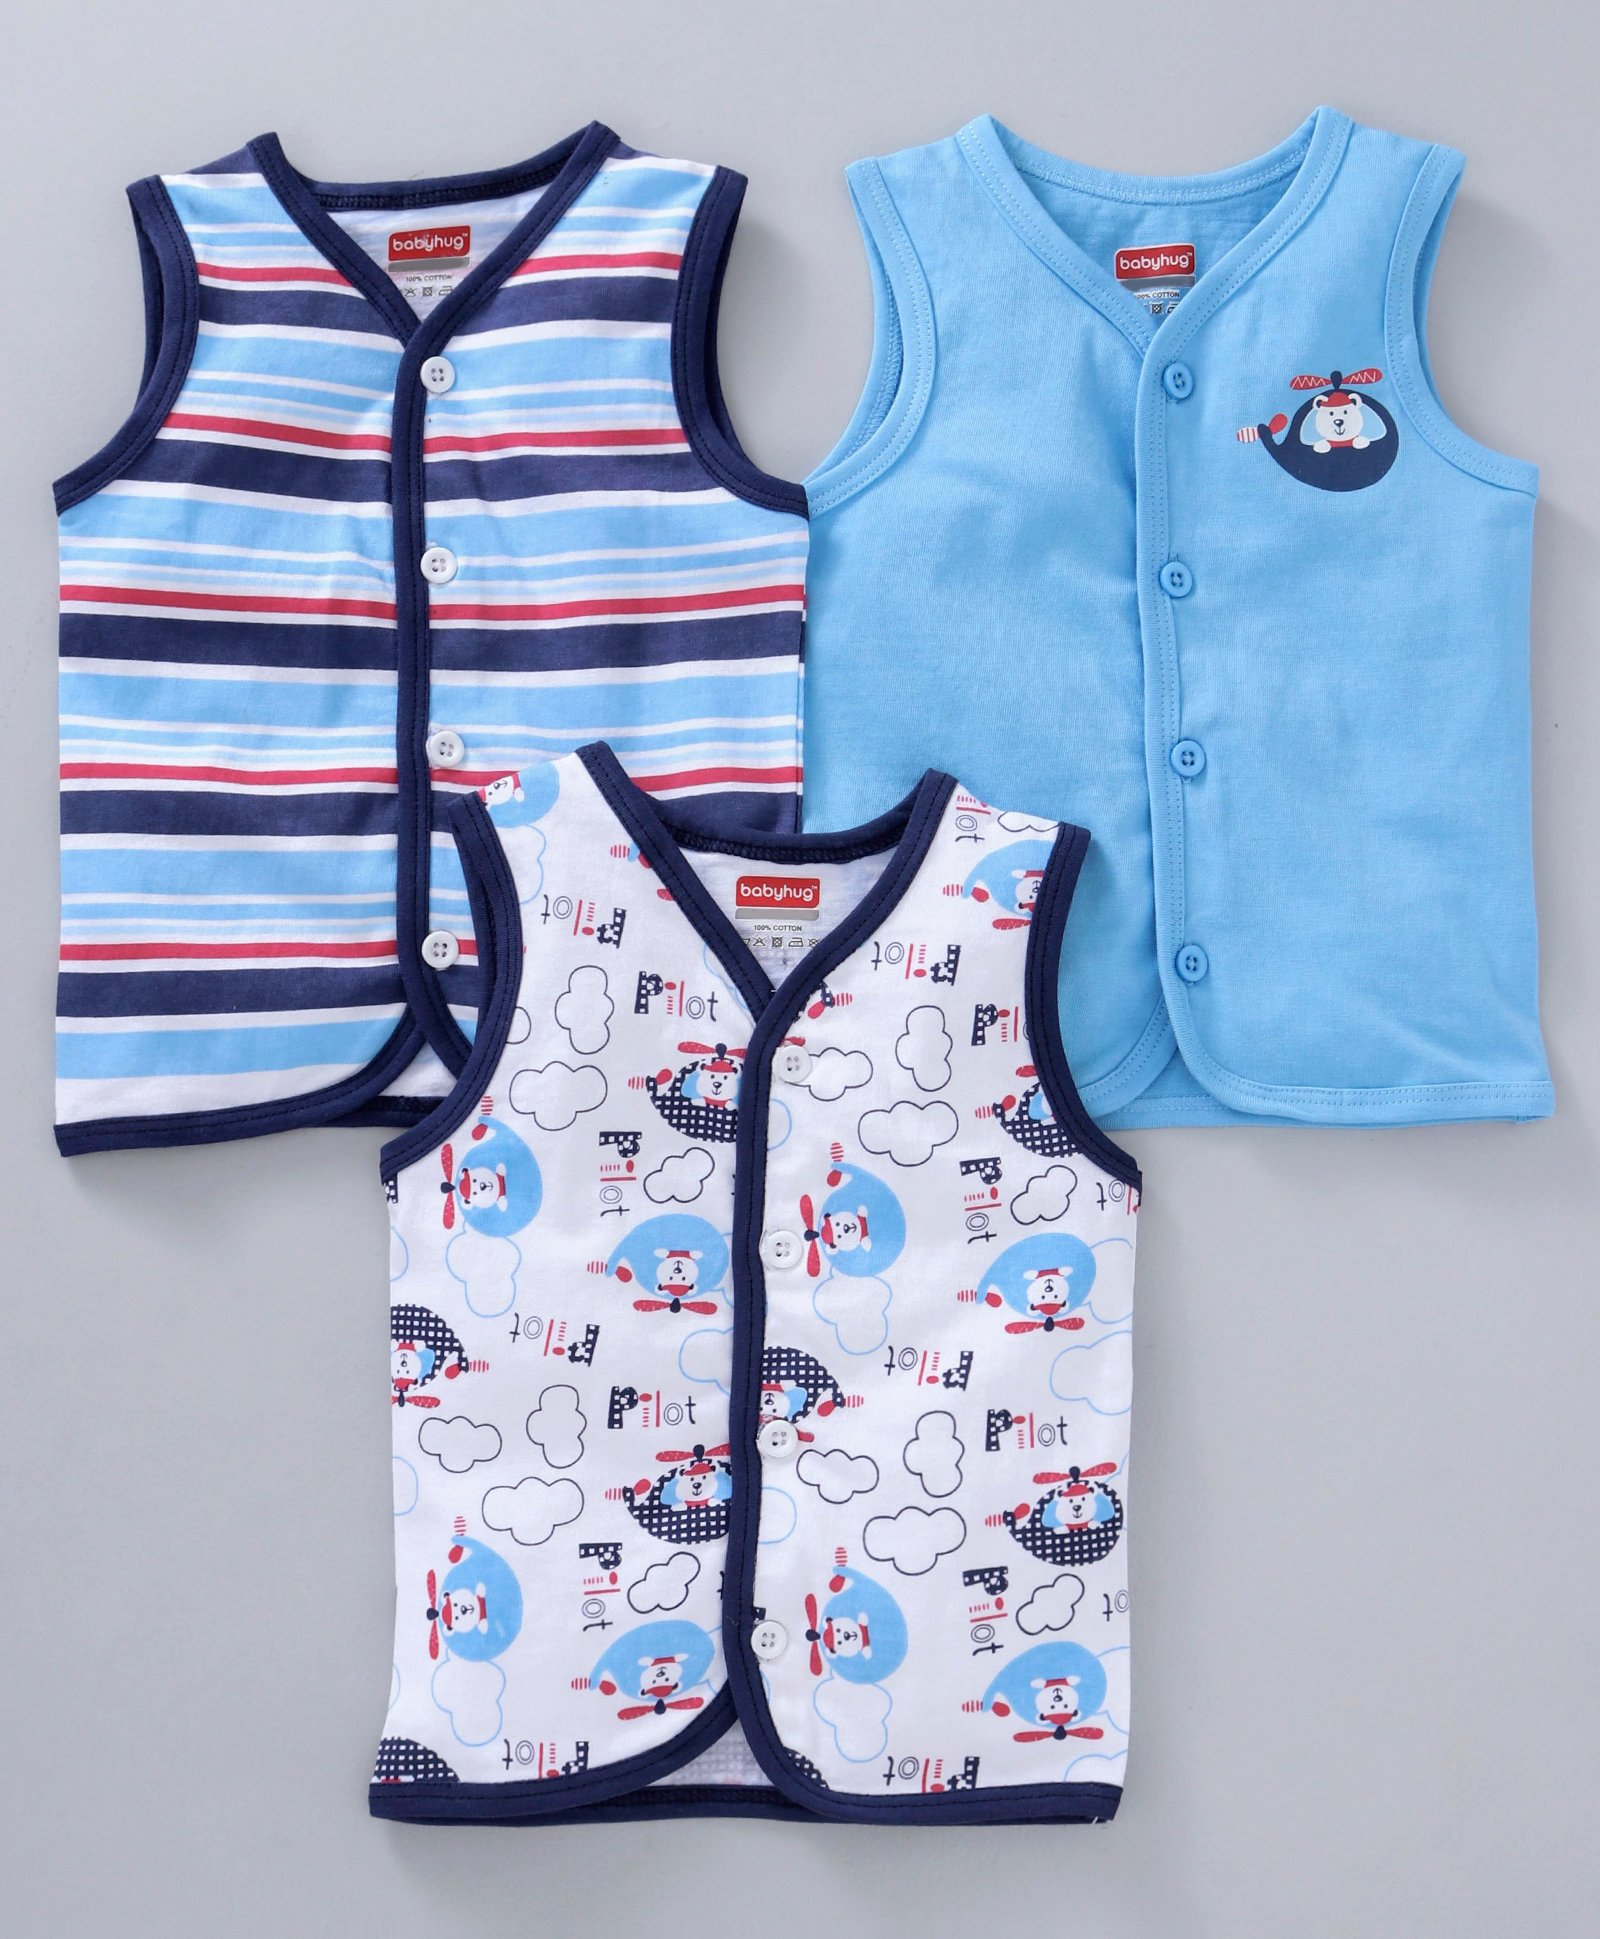 d172559a5ec8e5 Babyhug Cotton Sleeveless Vests Stripes   Pilot Print Pack of 3 - Blue White